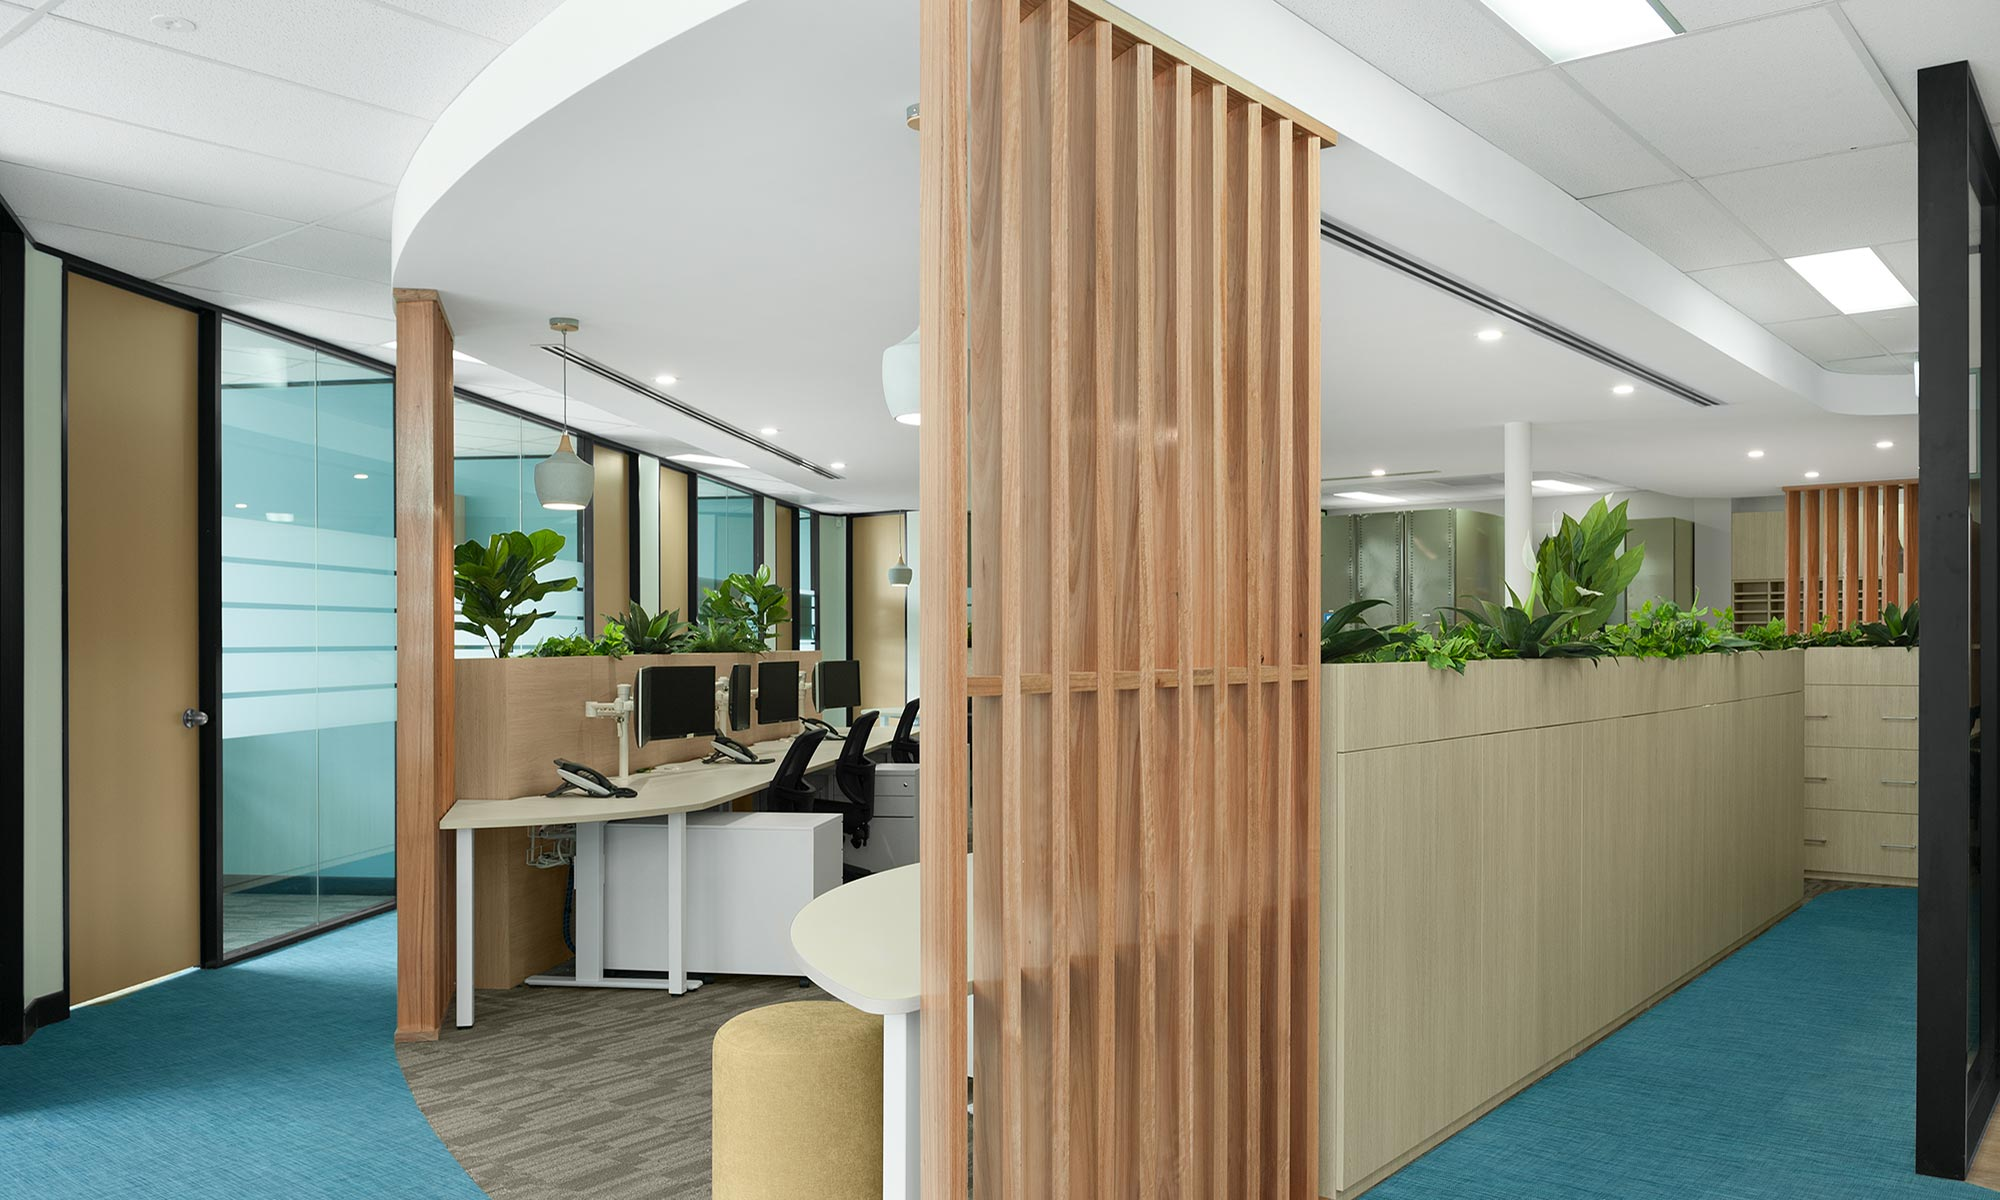 klm accountants office design fitout newcastle 07